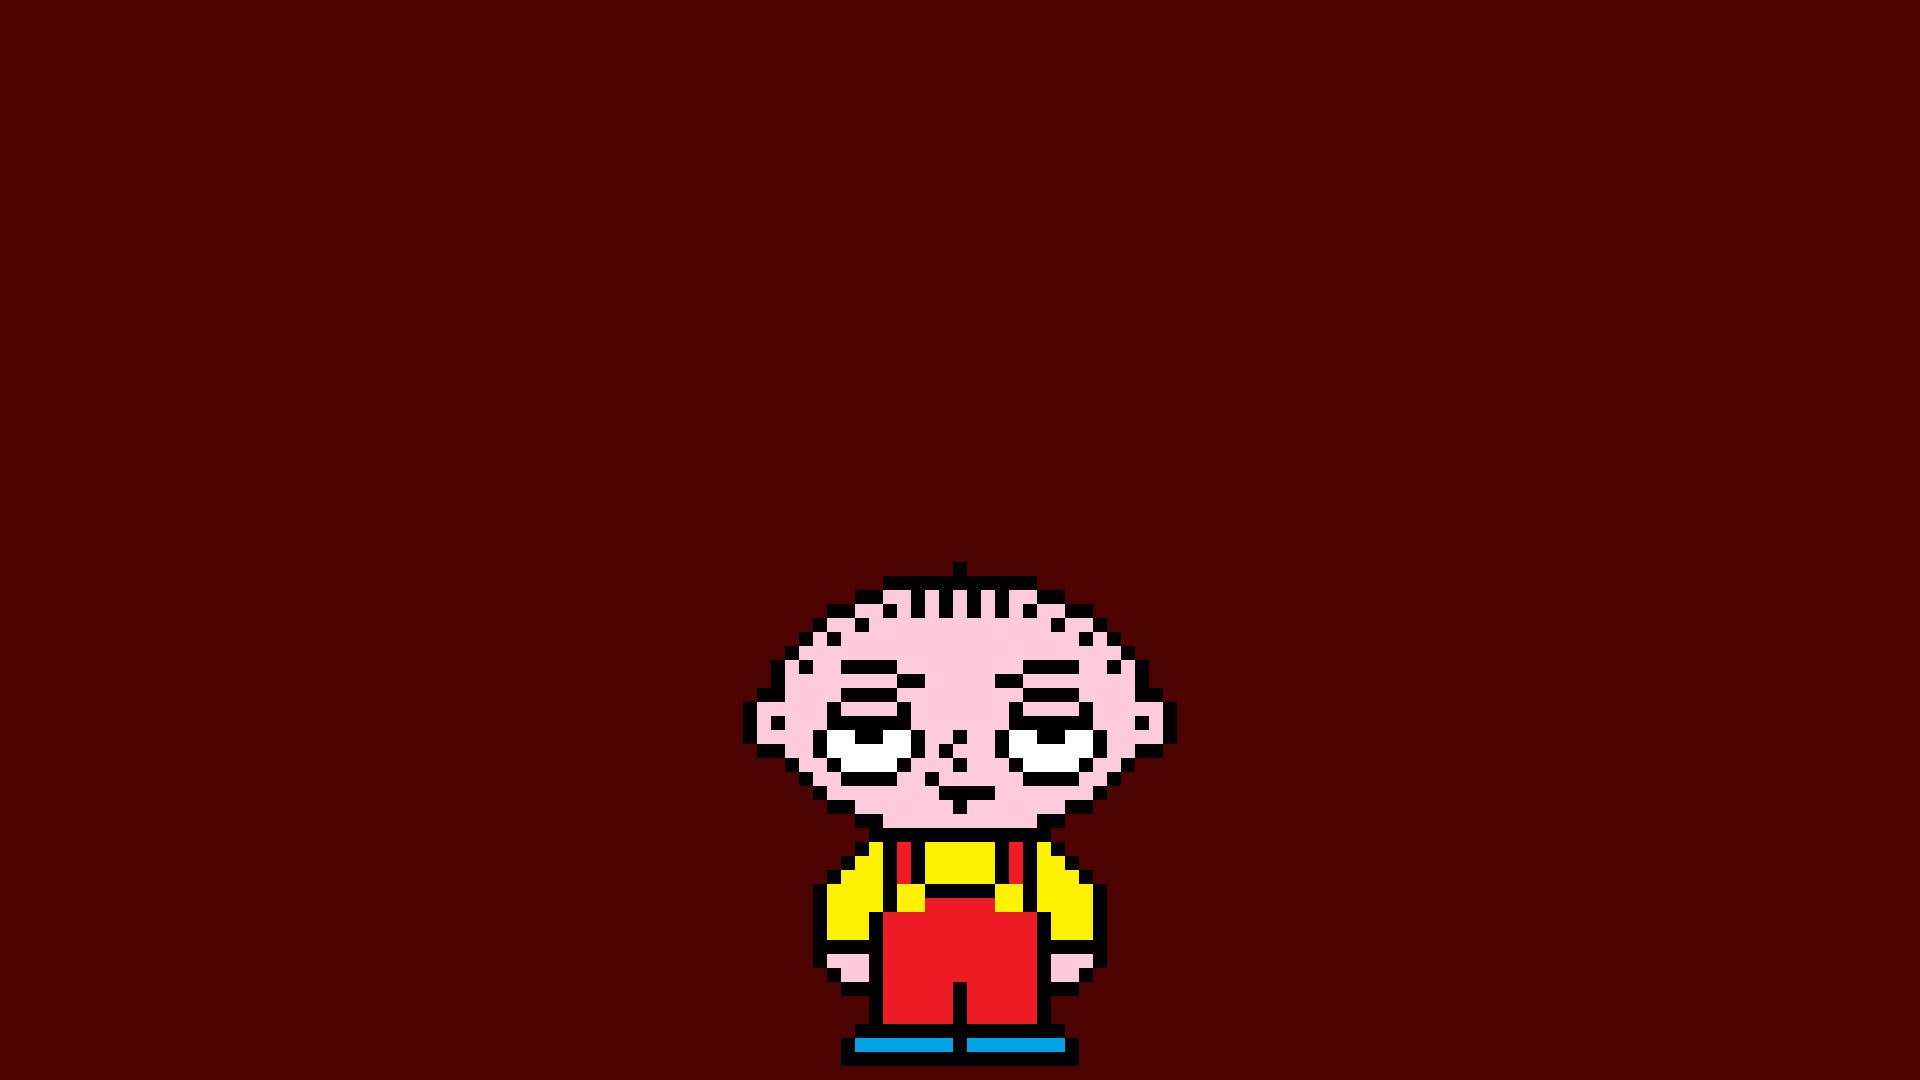 … stewie griffin pixel art pixels the family guy wallpapers hd …